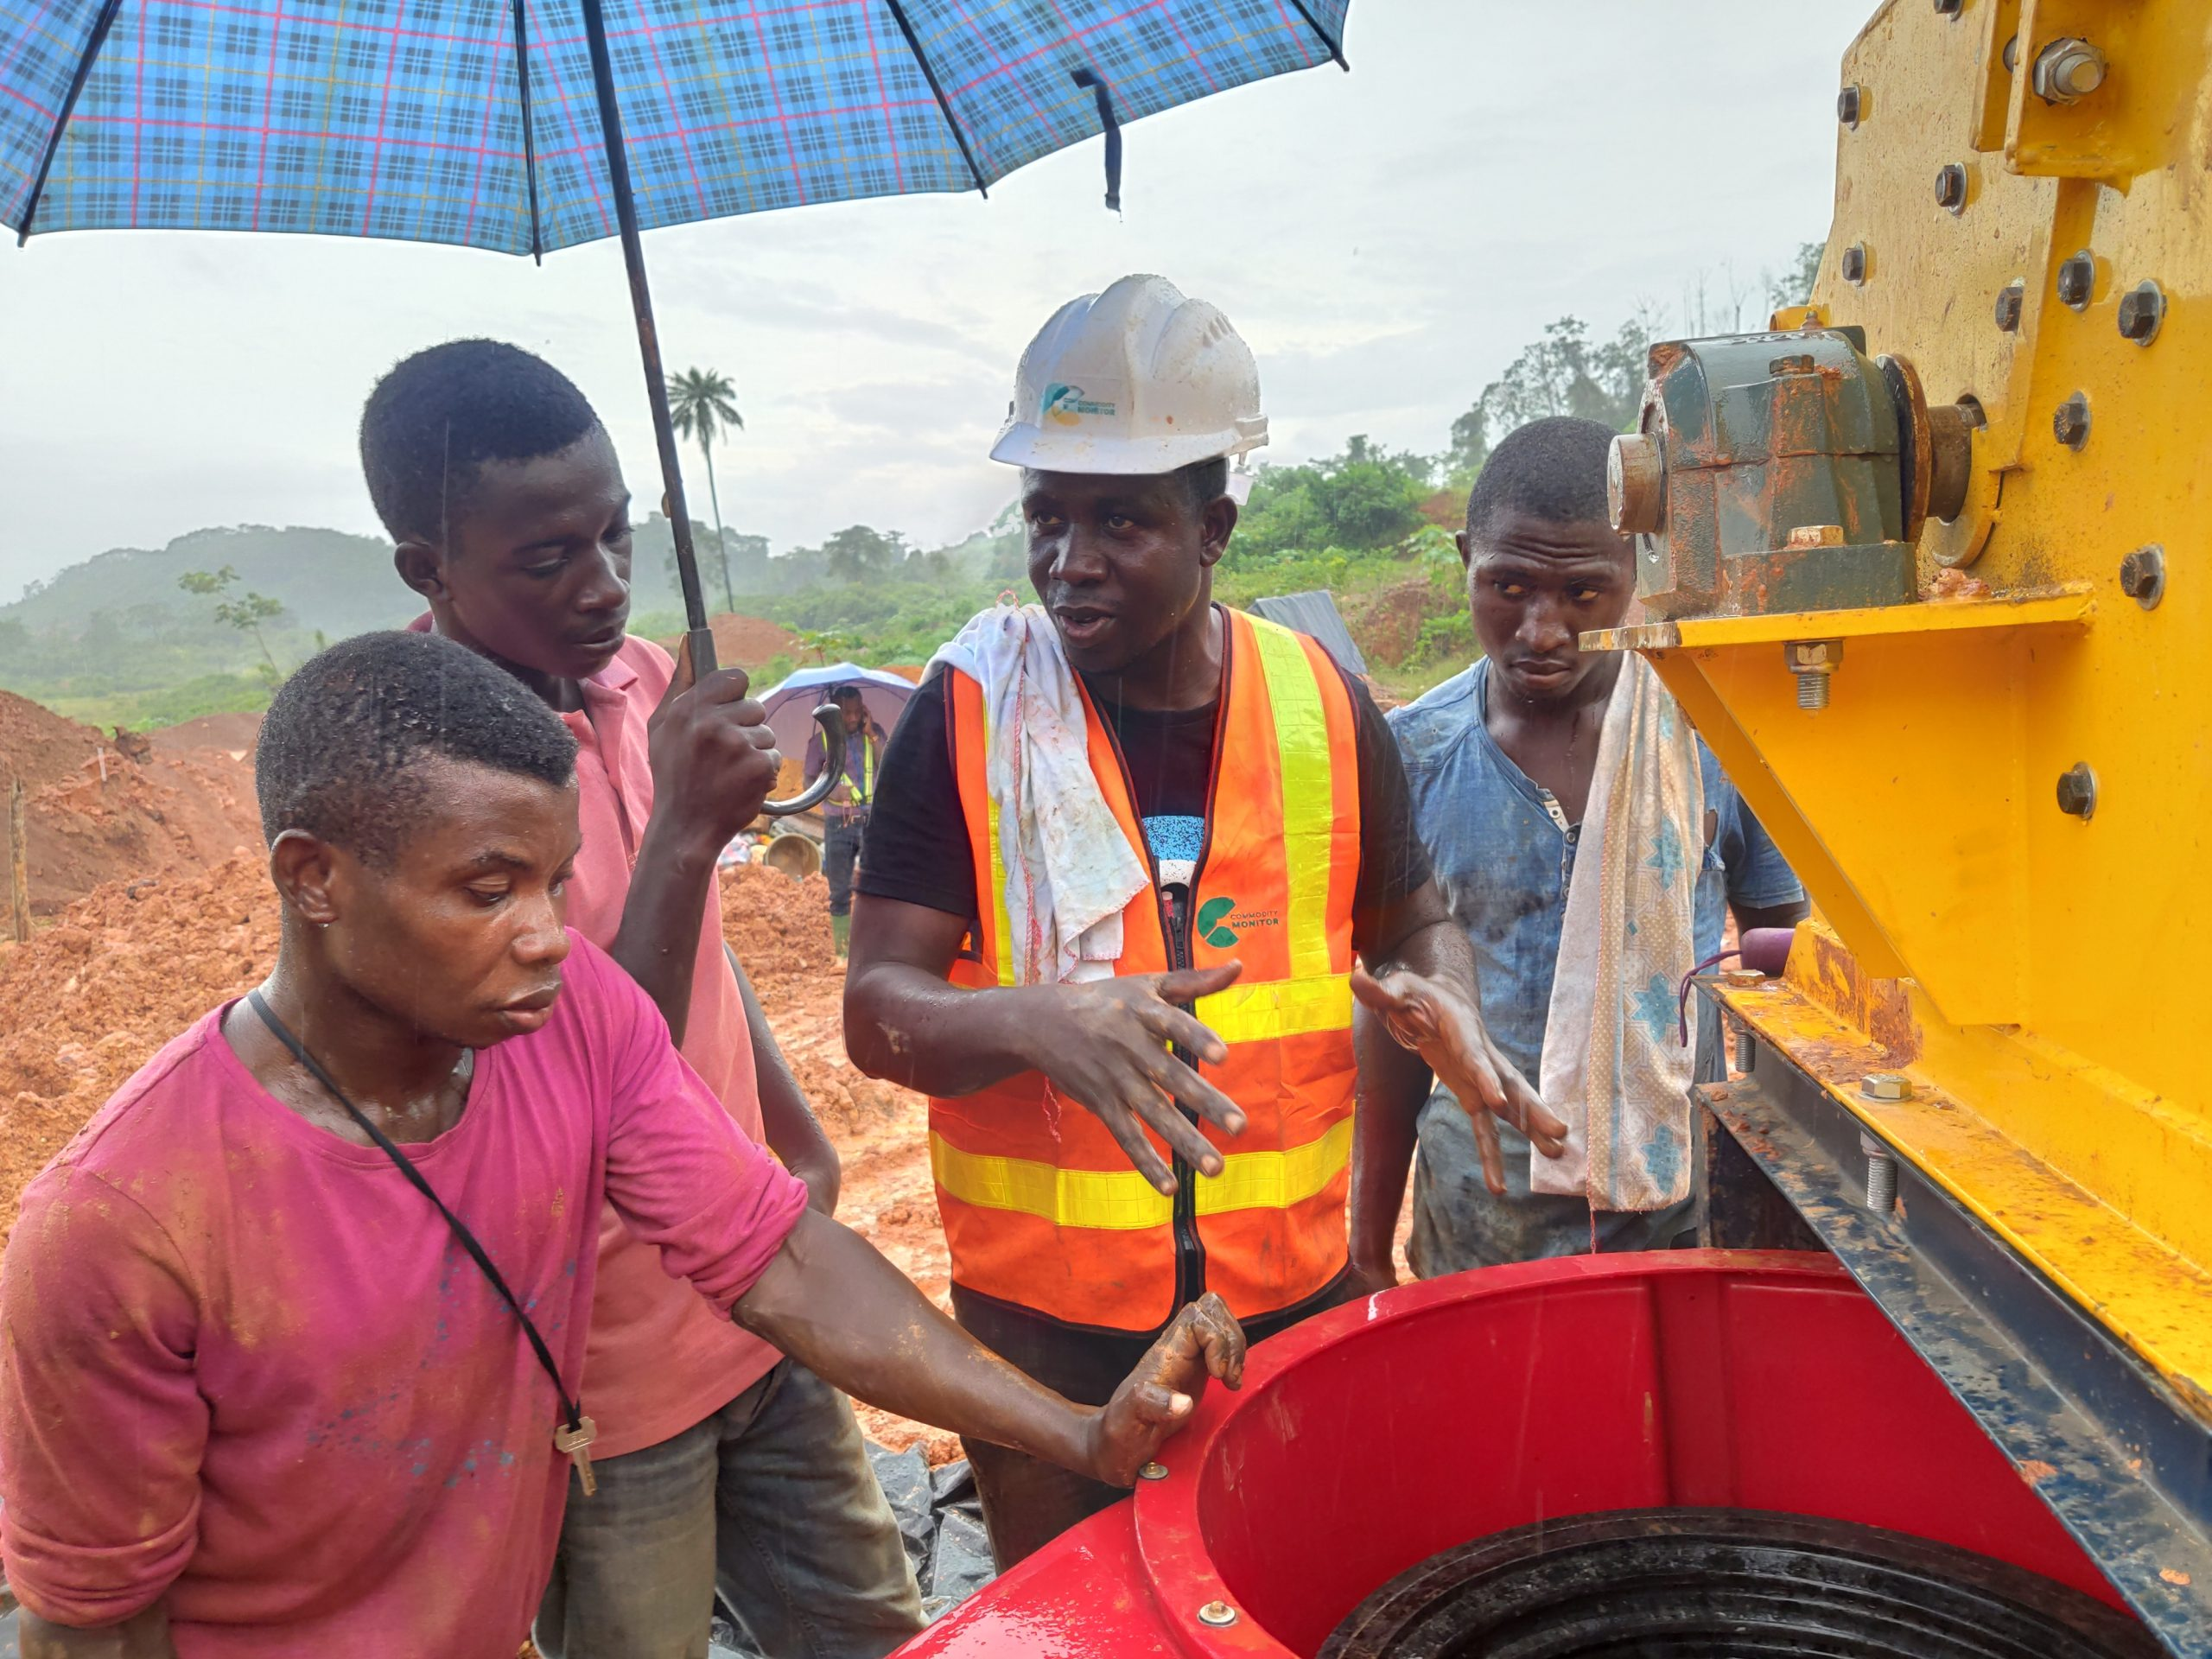 Commodity Monitor rolls out first-ever successful mercury-free equipment for small scale miners in Ghana